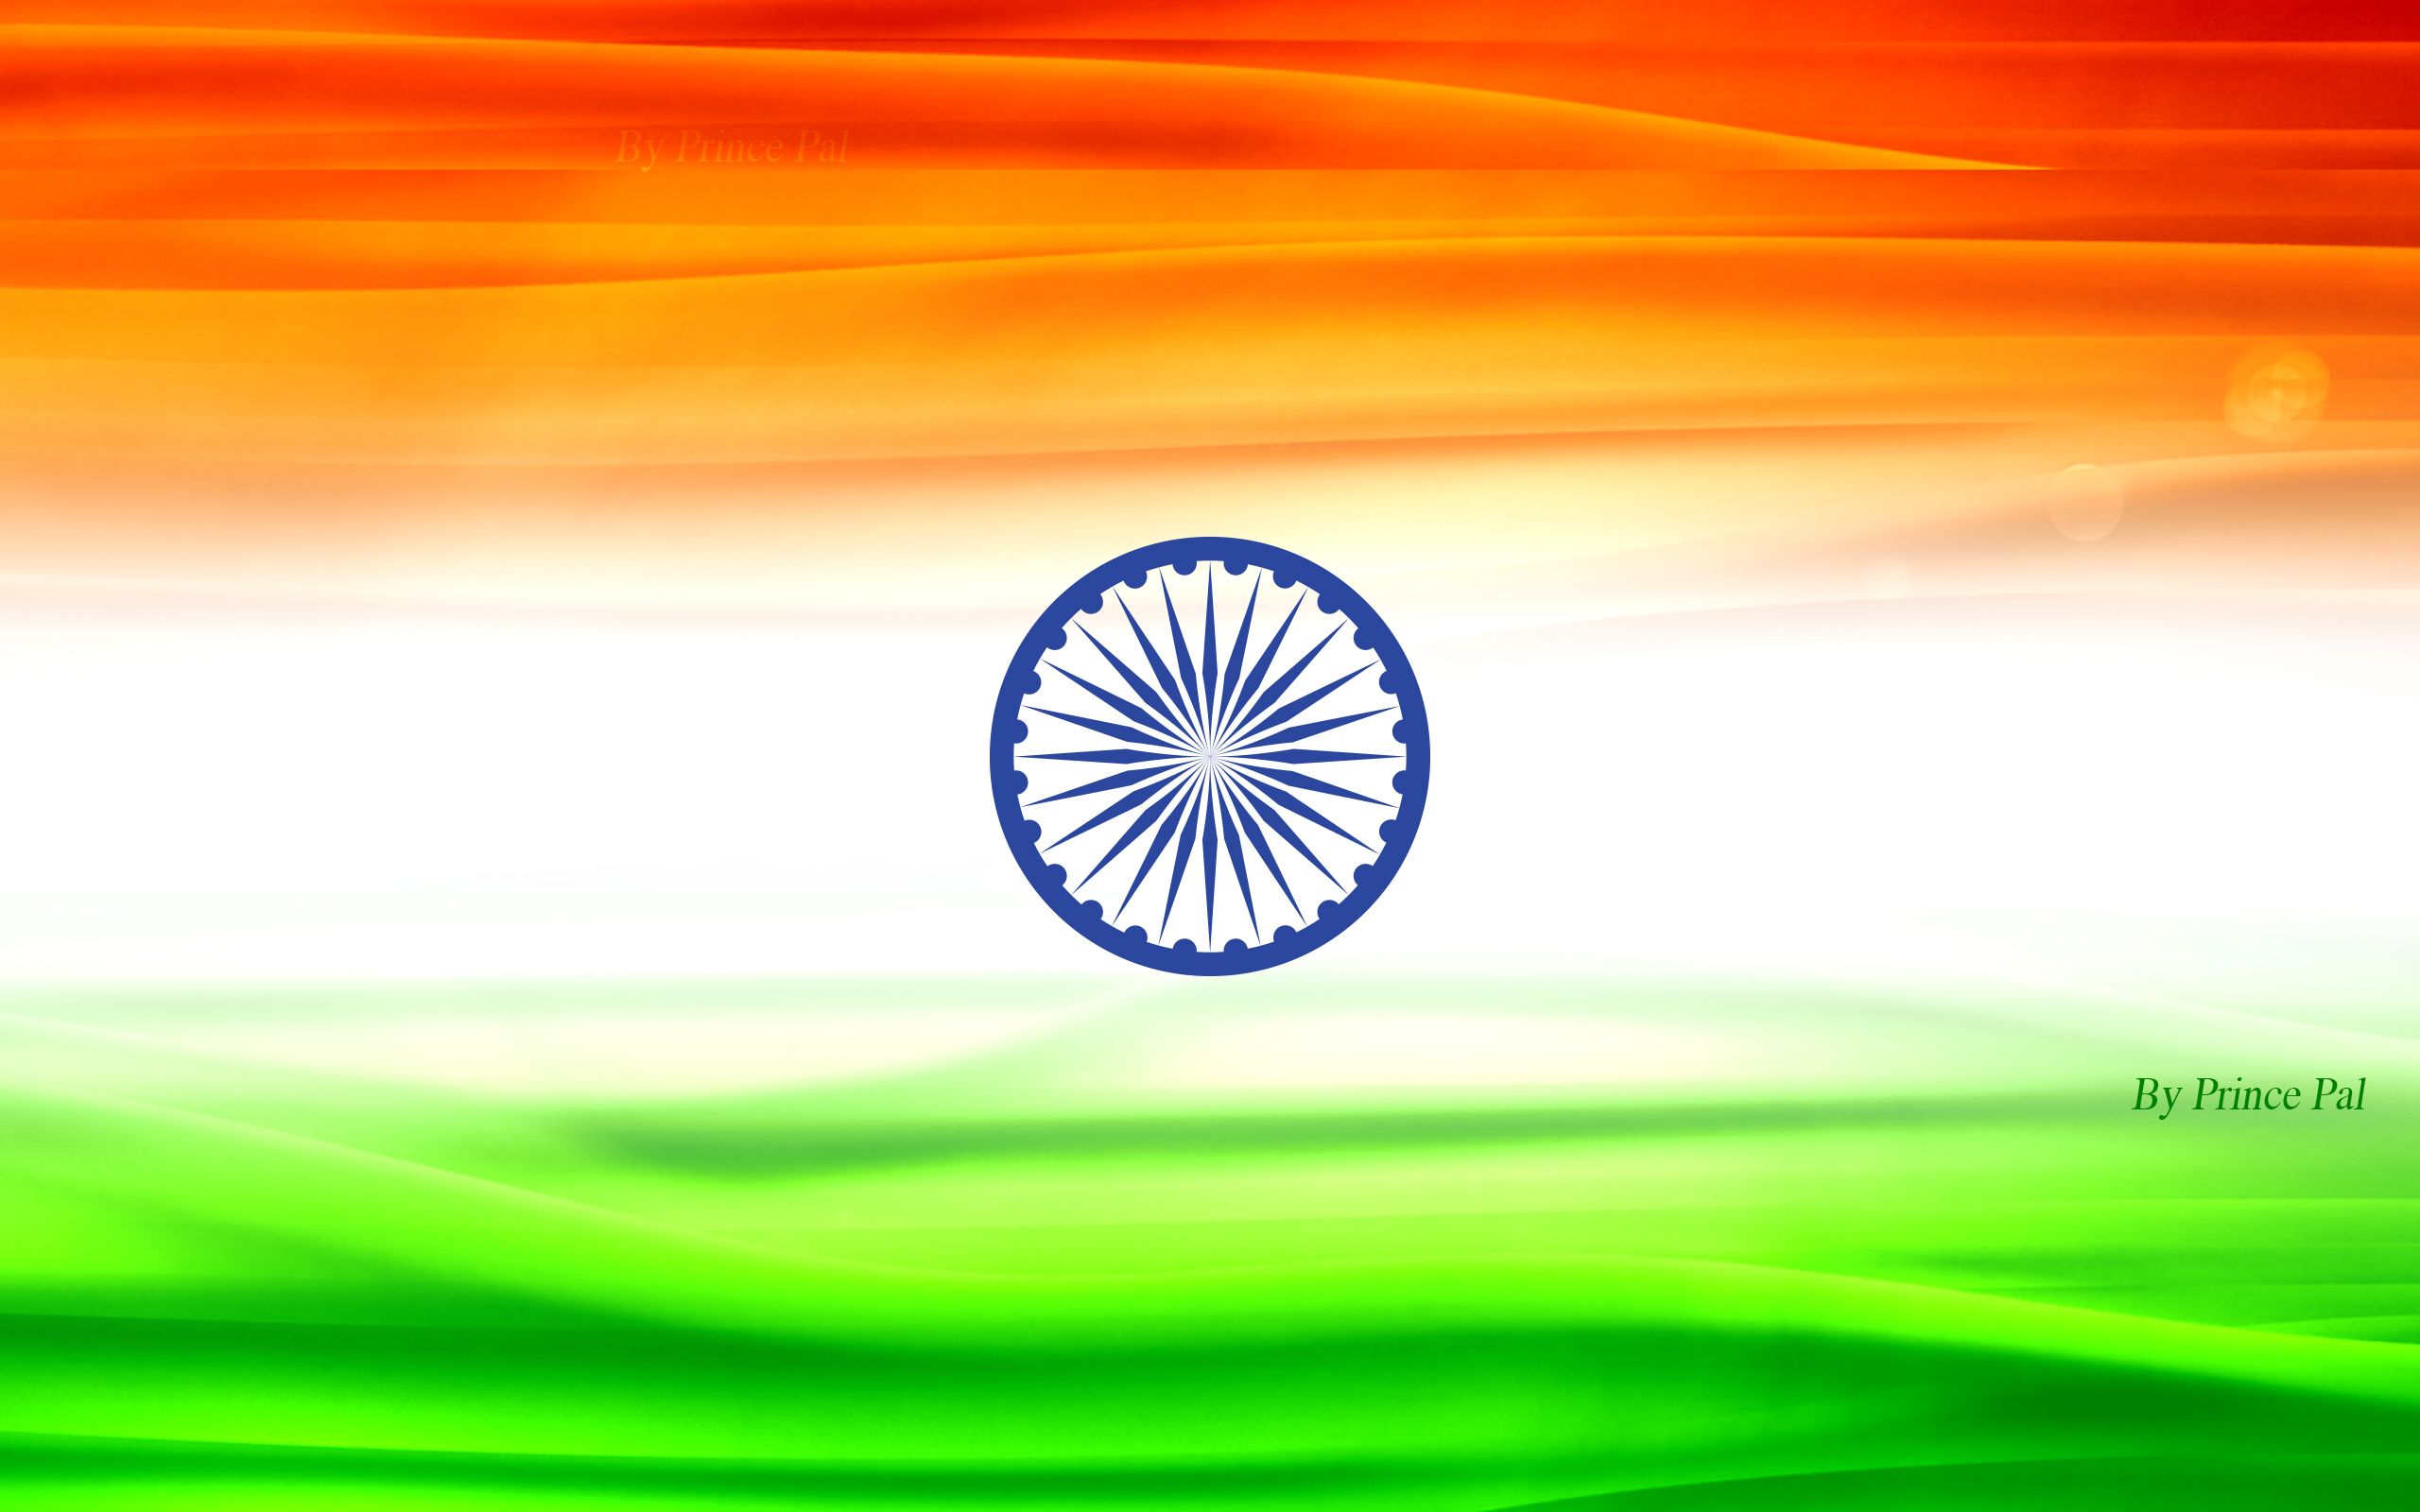 India Flag Hd: Indian Flag HD Images For Whatsapp DP